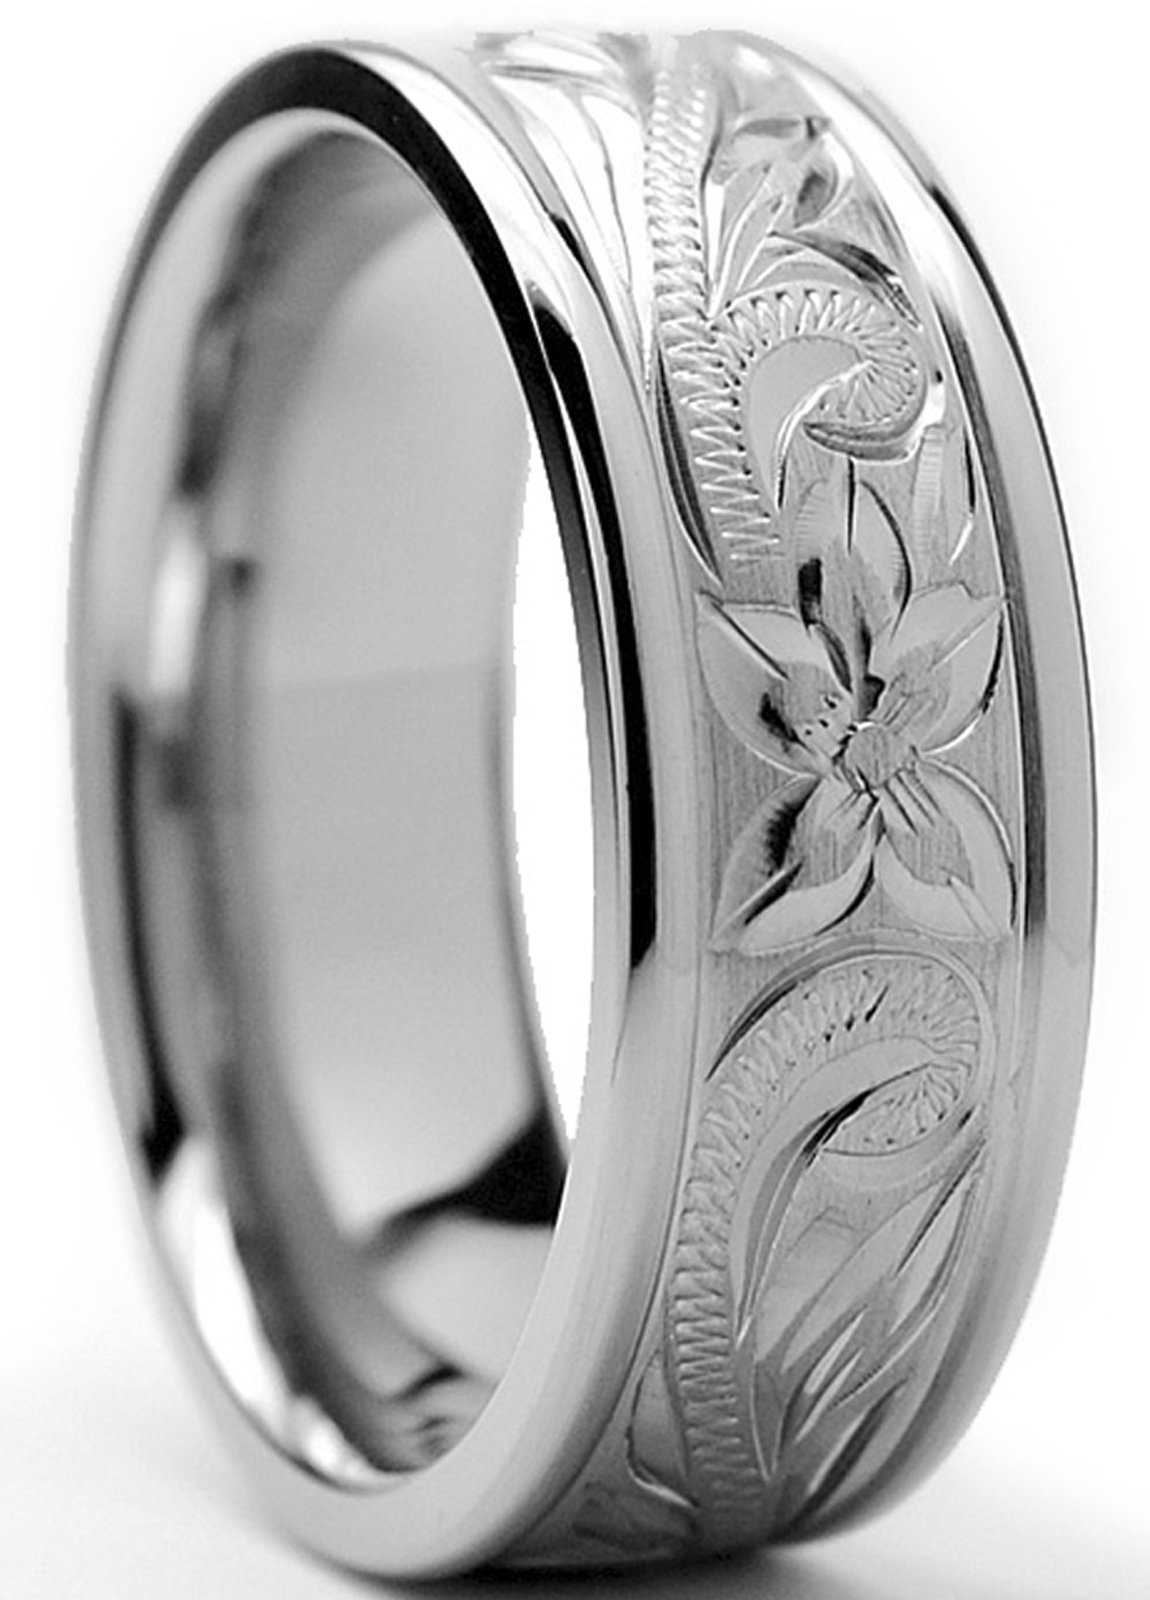 8MM Titanium Ring Wedding Band With Engraved Floral Design Size 11